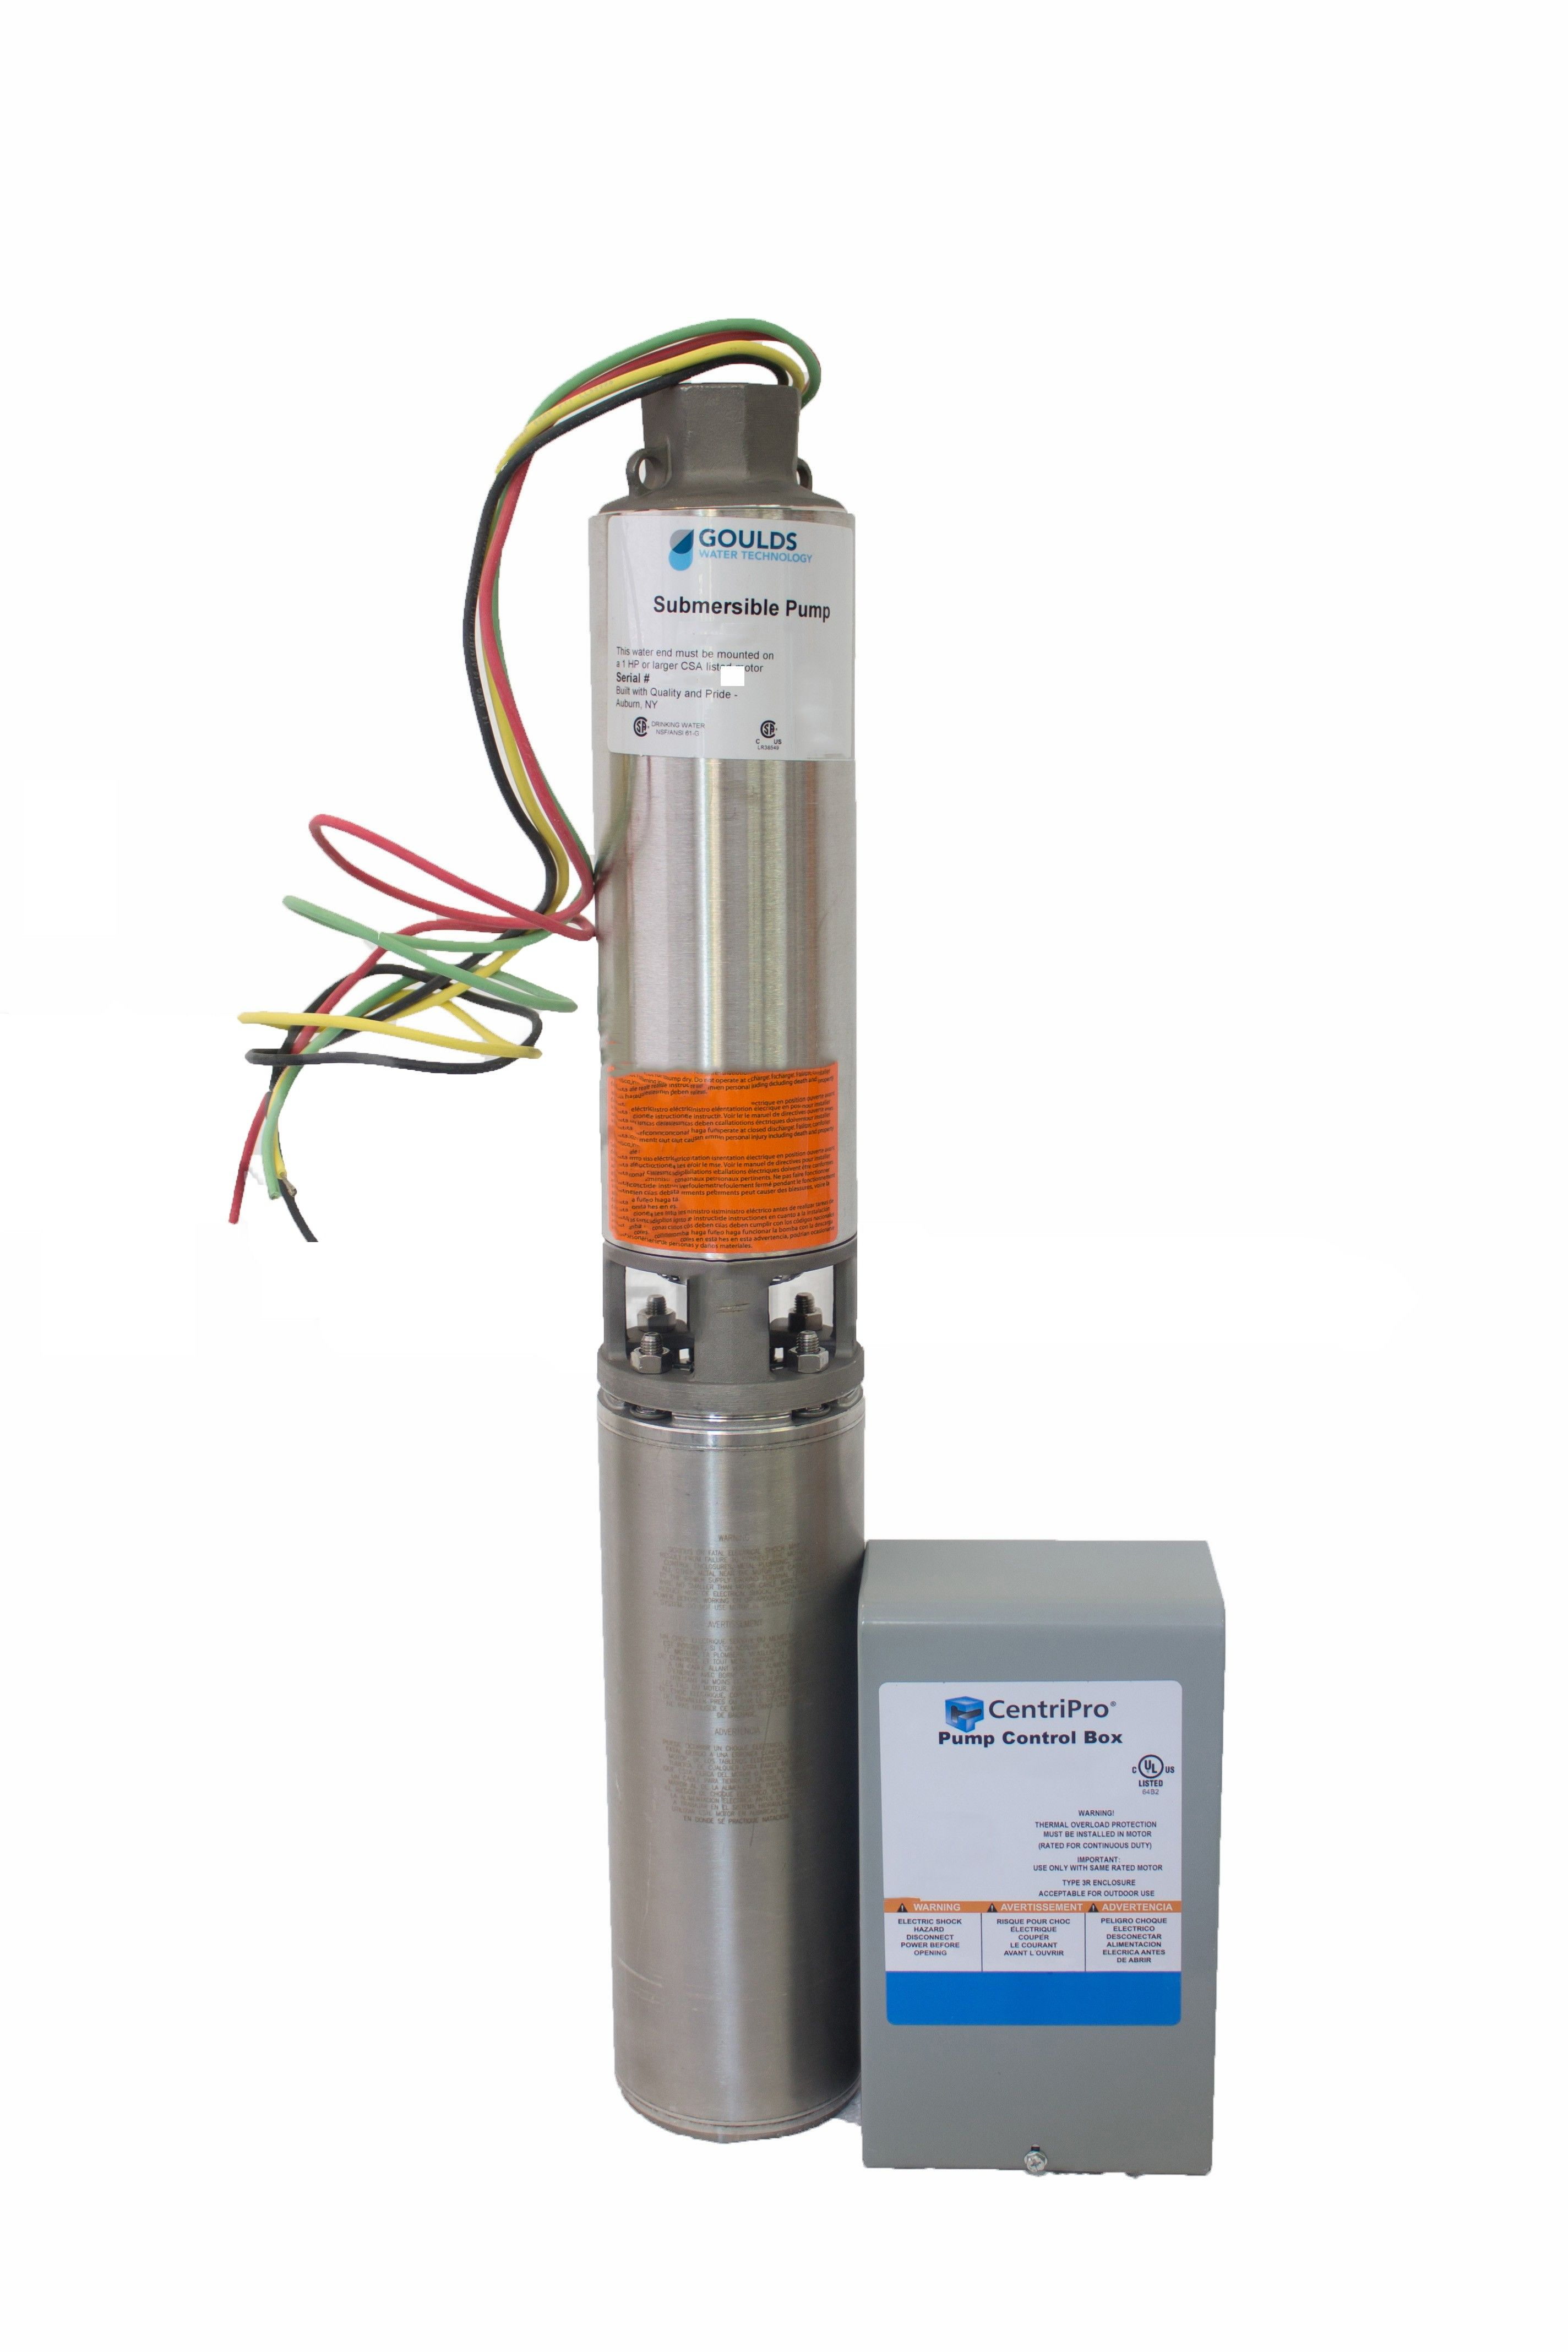 Submersible Pump Control Box Wiring In 2020 Submersible Pump Submersible Well Pump Submersible